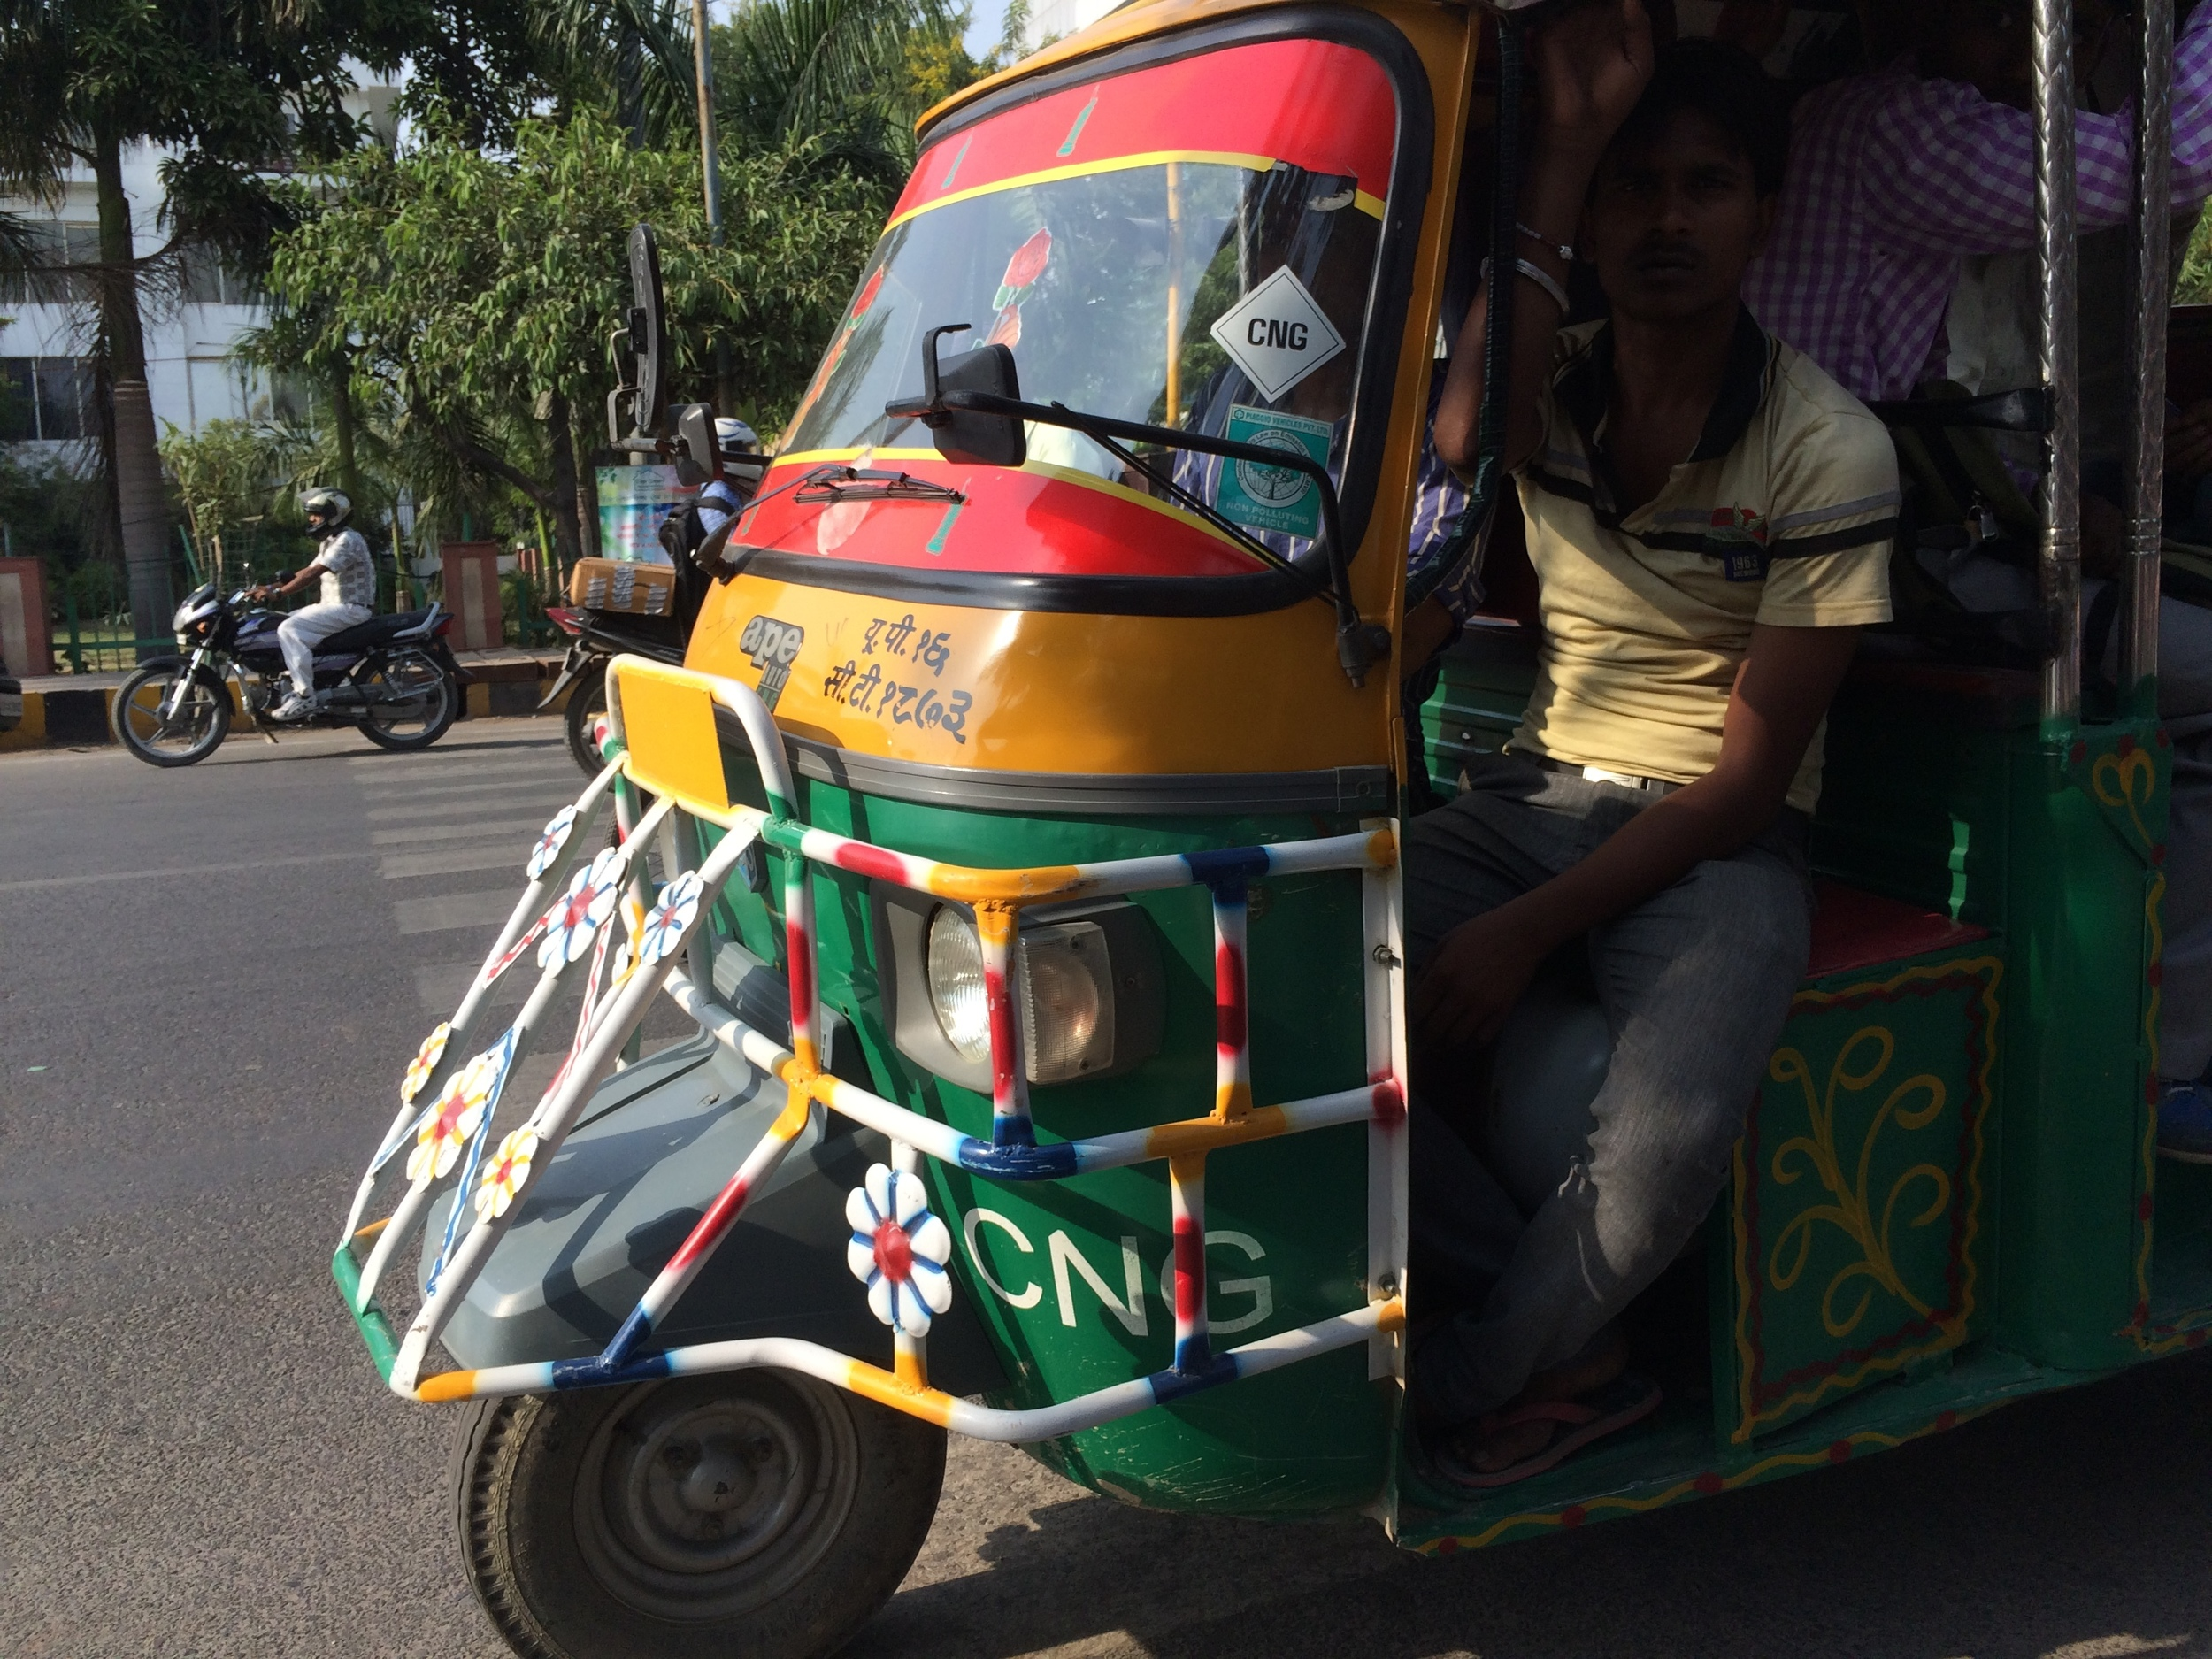 Auto-rickshaw-bus provides collective transport in Noida, Delhi.